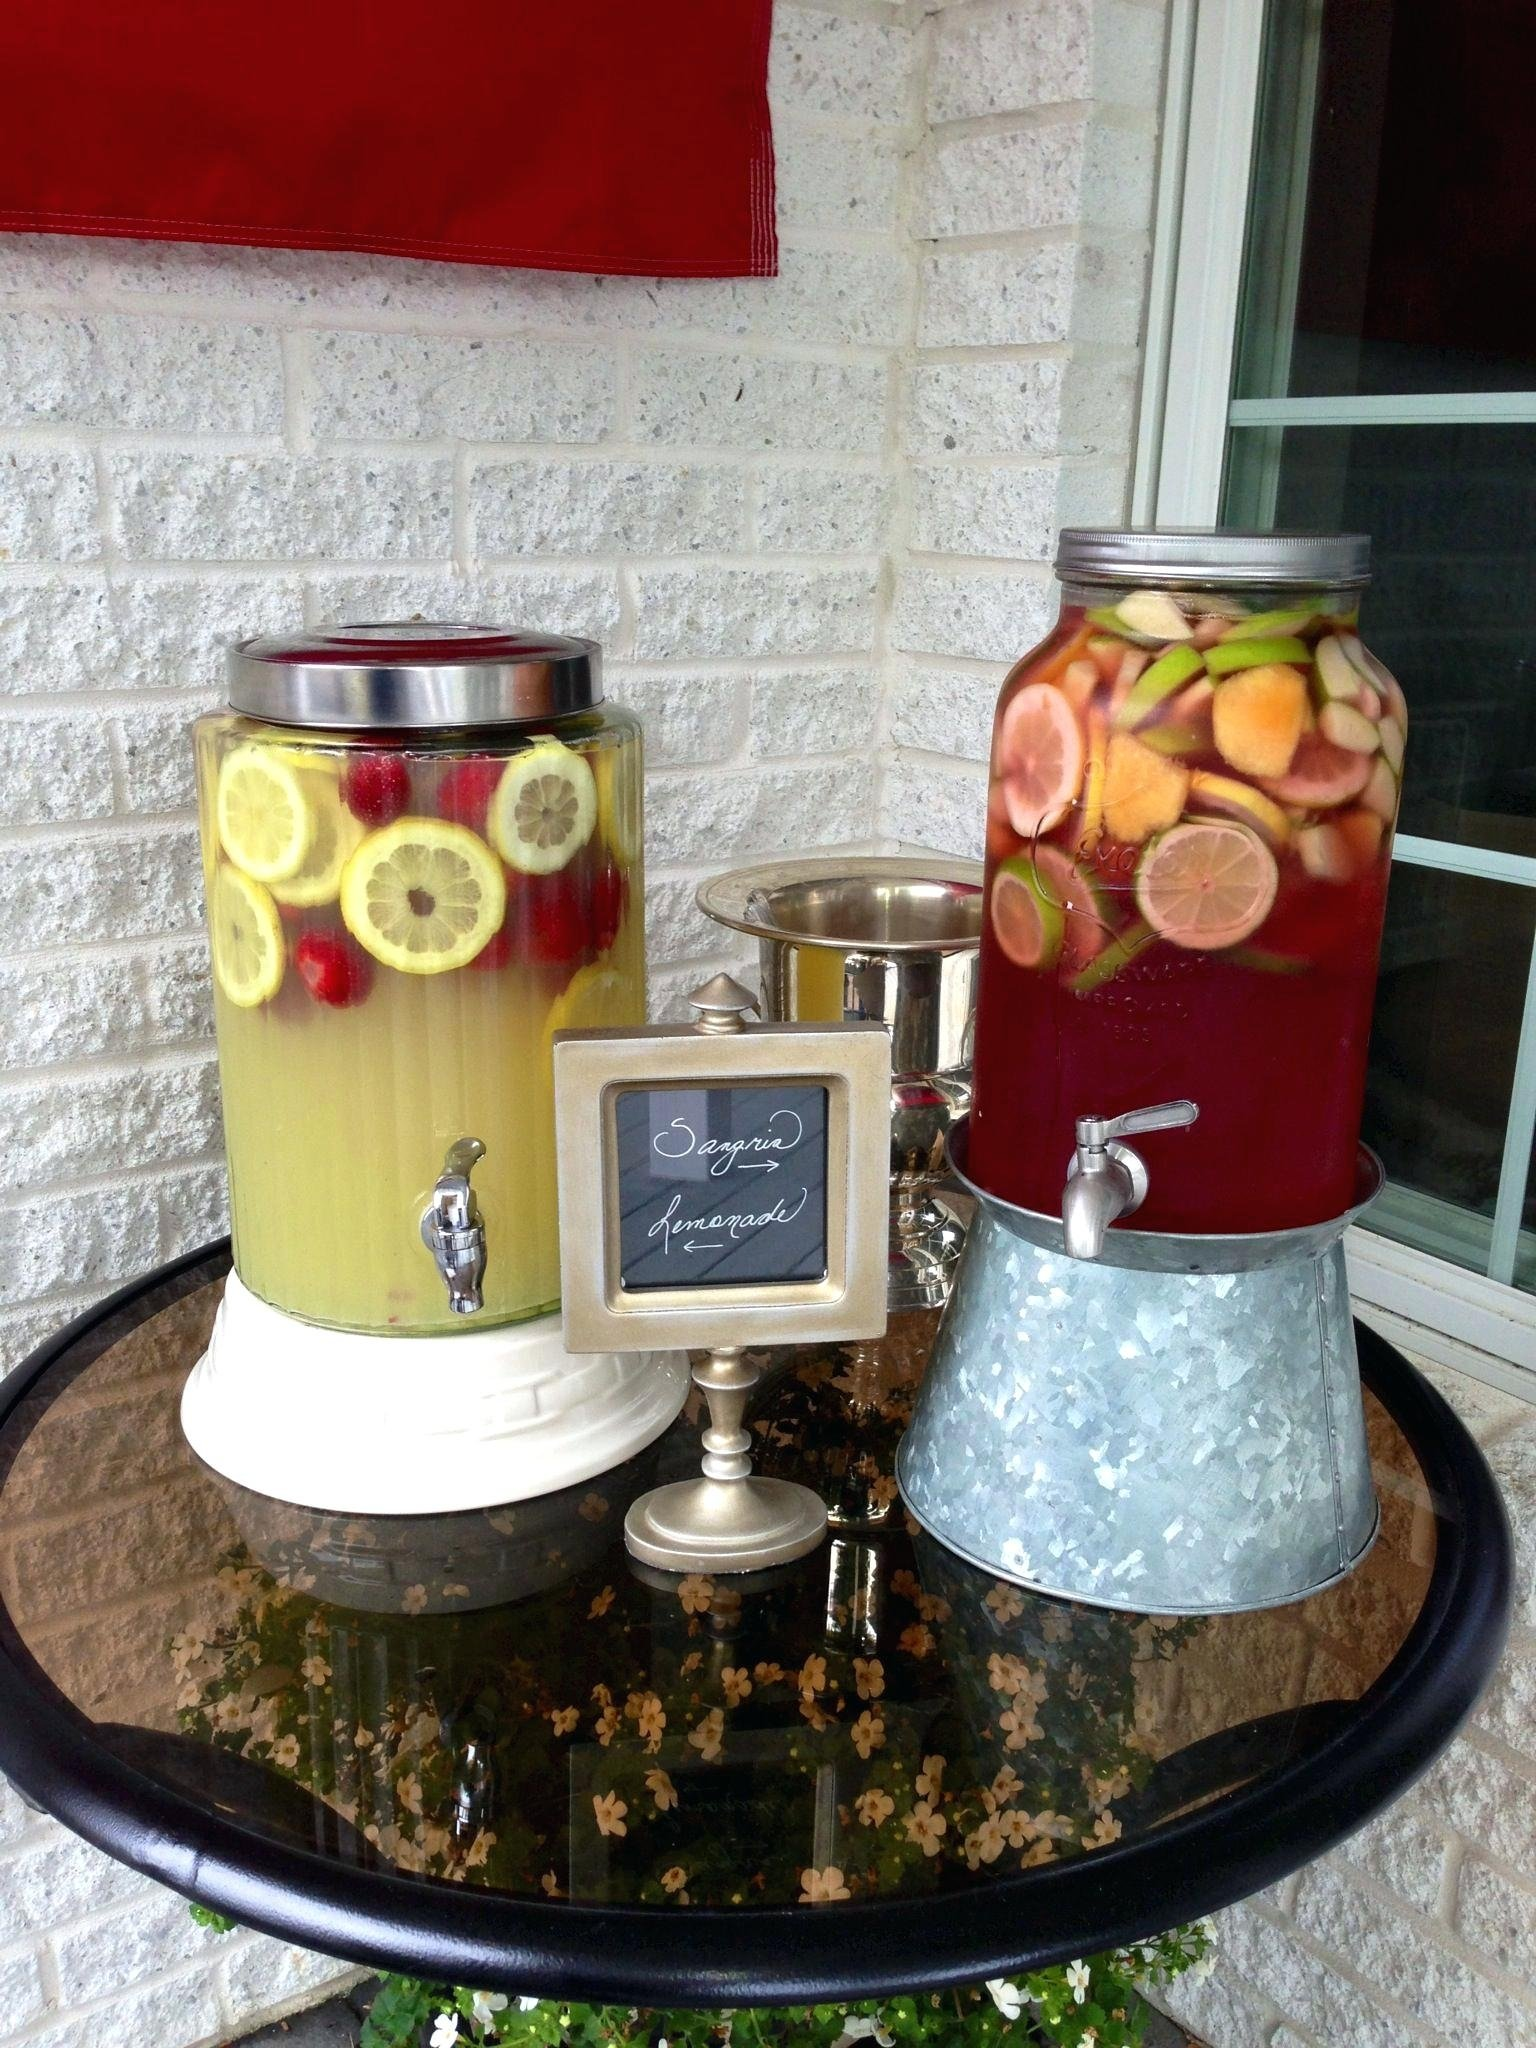 10 Awesome Graduation Party Ideas For Guys grad party ideas graduation for college guys 2016 high school grads 1 2021